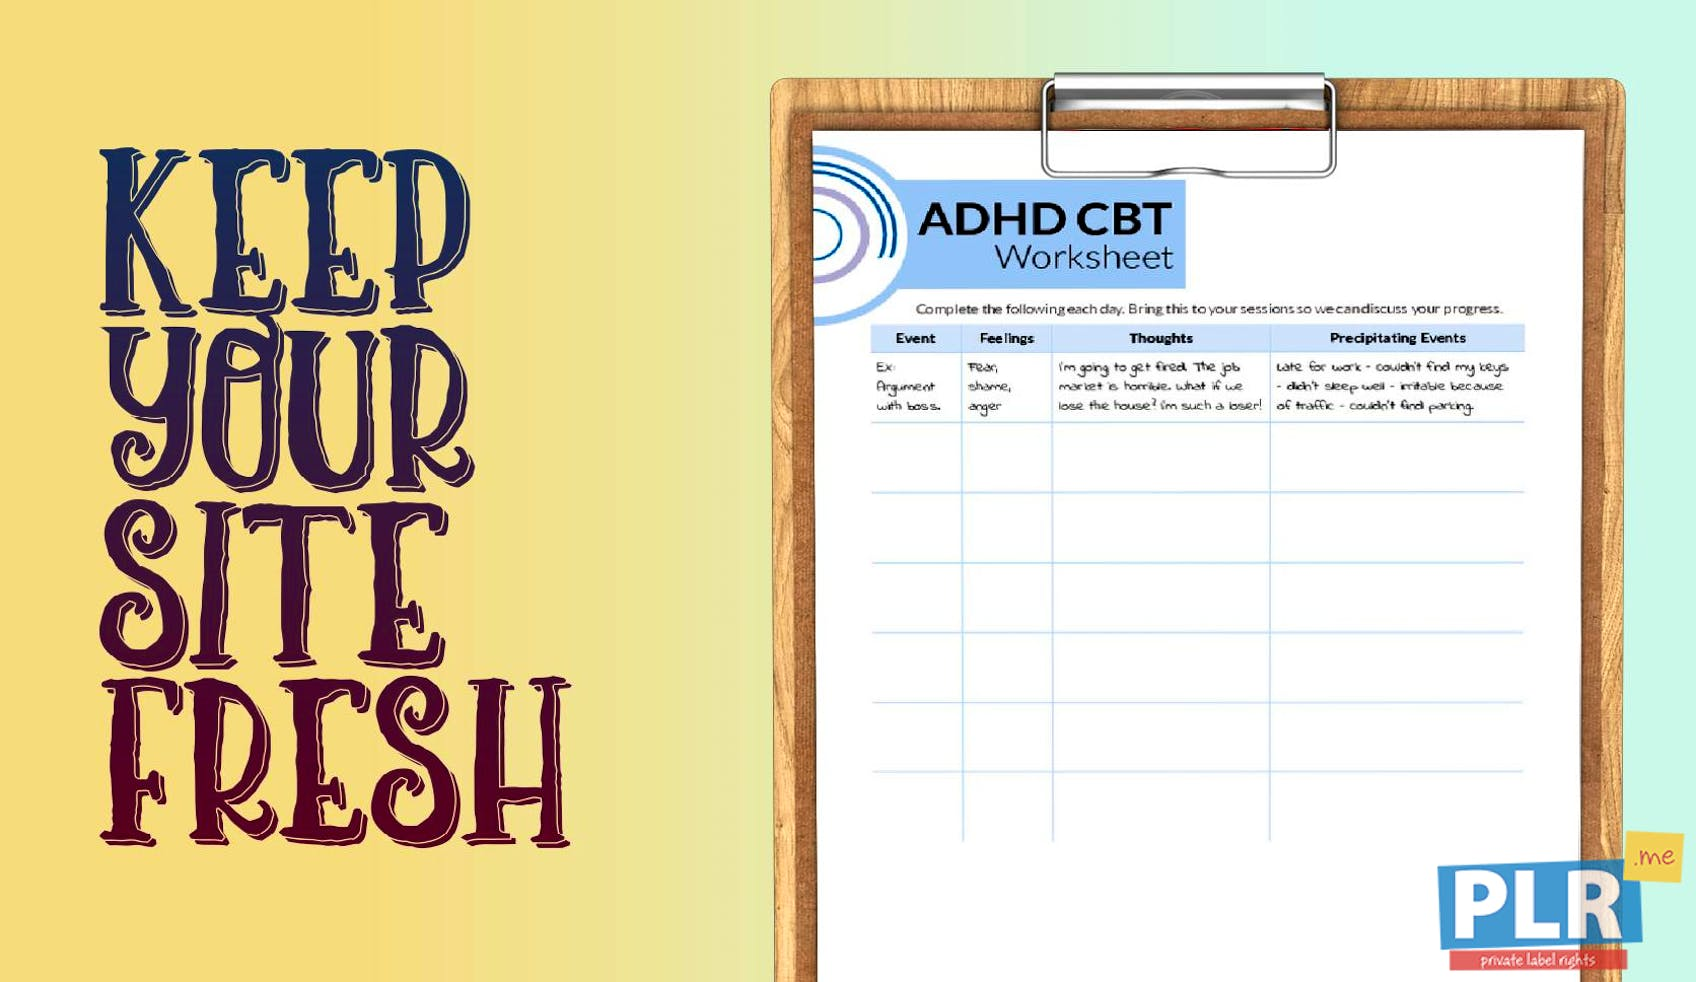 Plr Worksheets Adhd Cbt Worksheet Plr